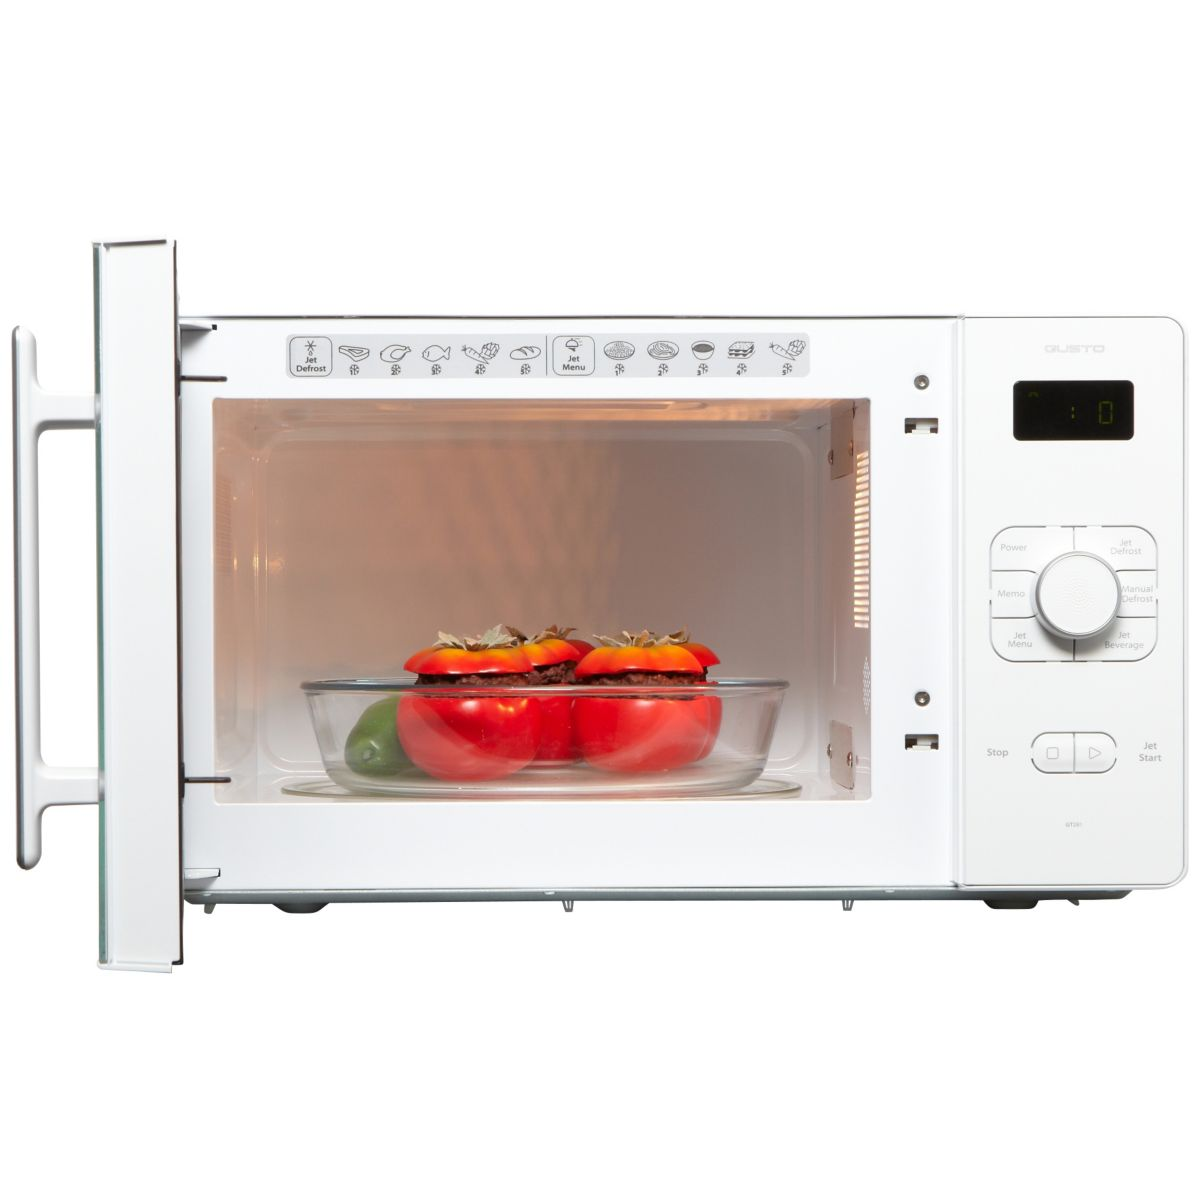 Micro-onde monofonction whirlpool gt281wh - 2% de remise : code gam2